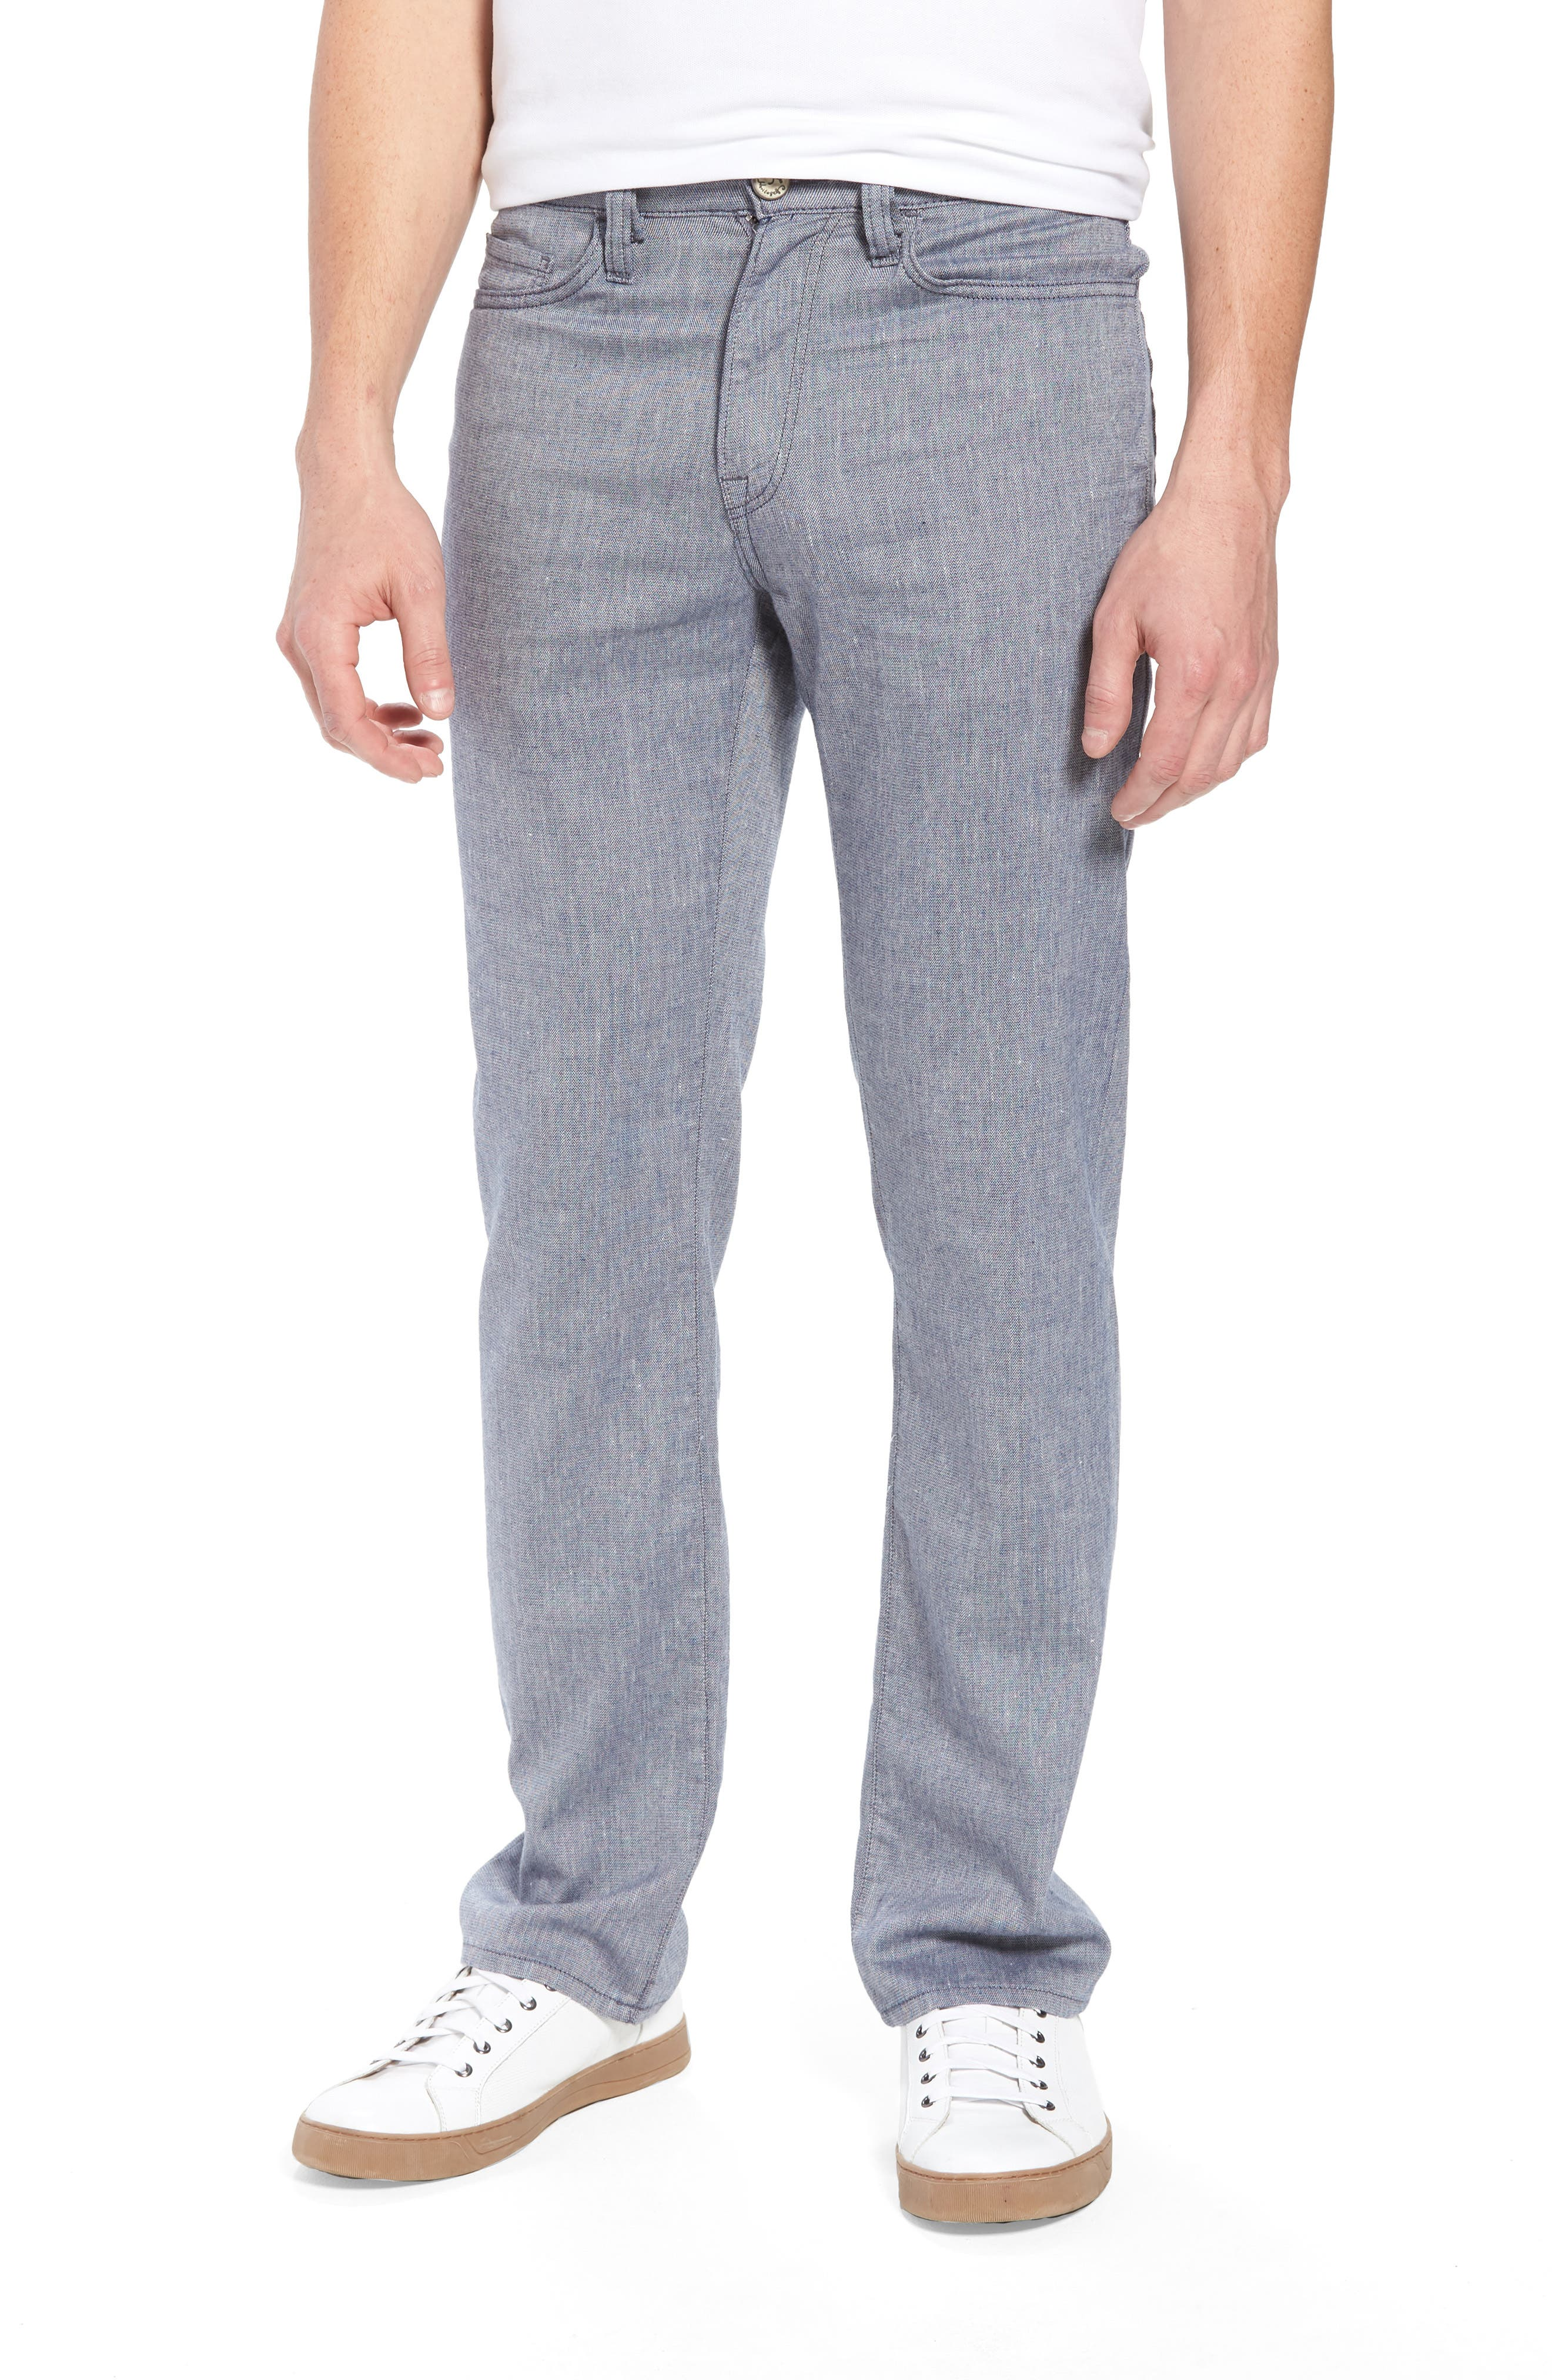 Charisma Relaxed Fit Pants,                         Main,                         color, Indigo Textured